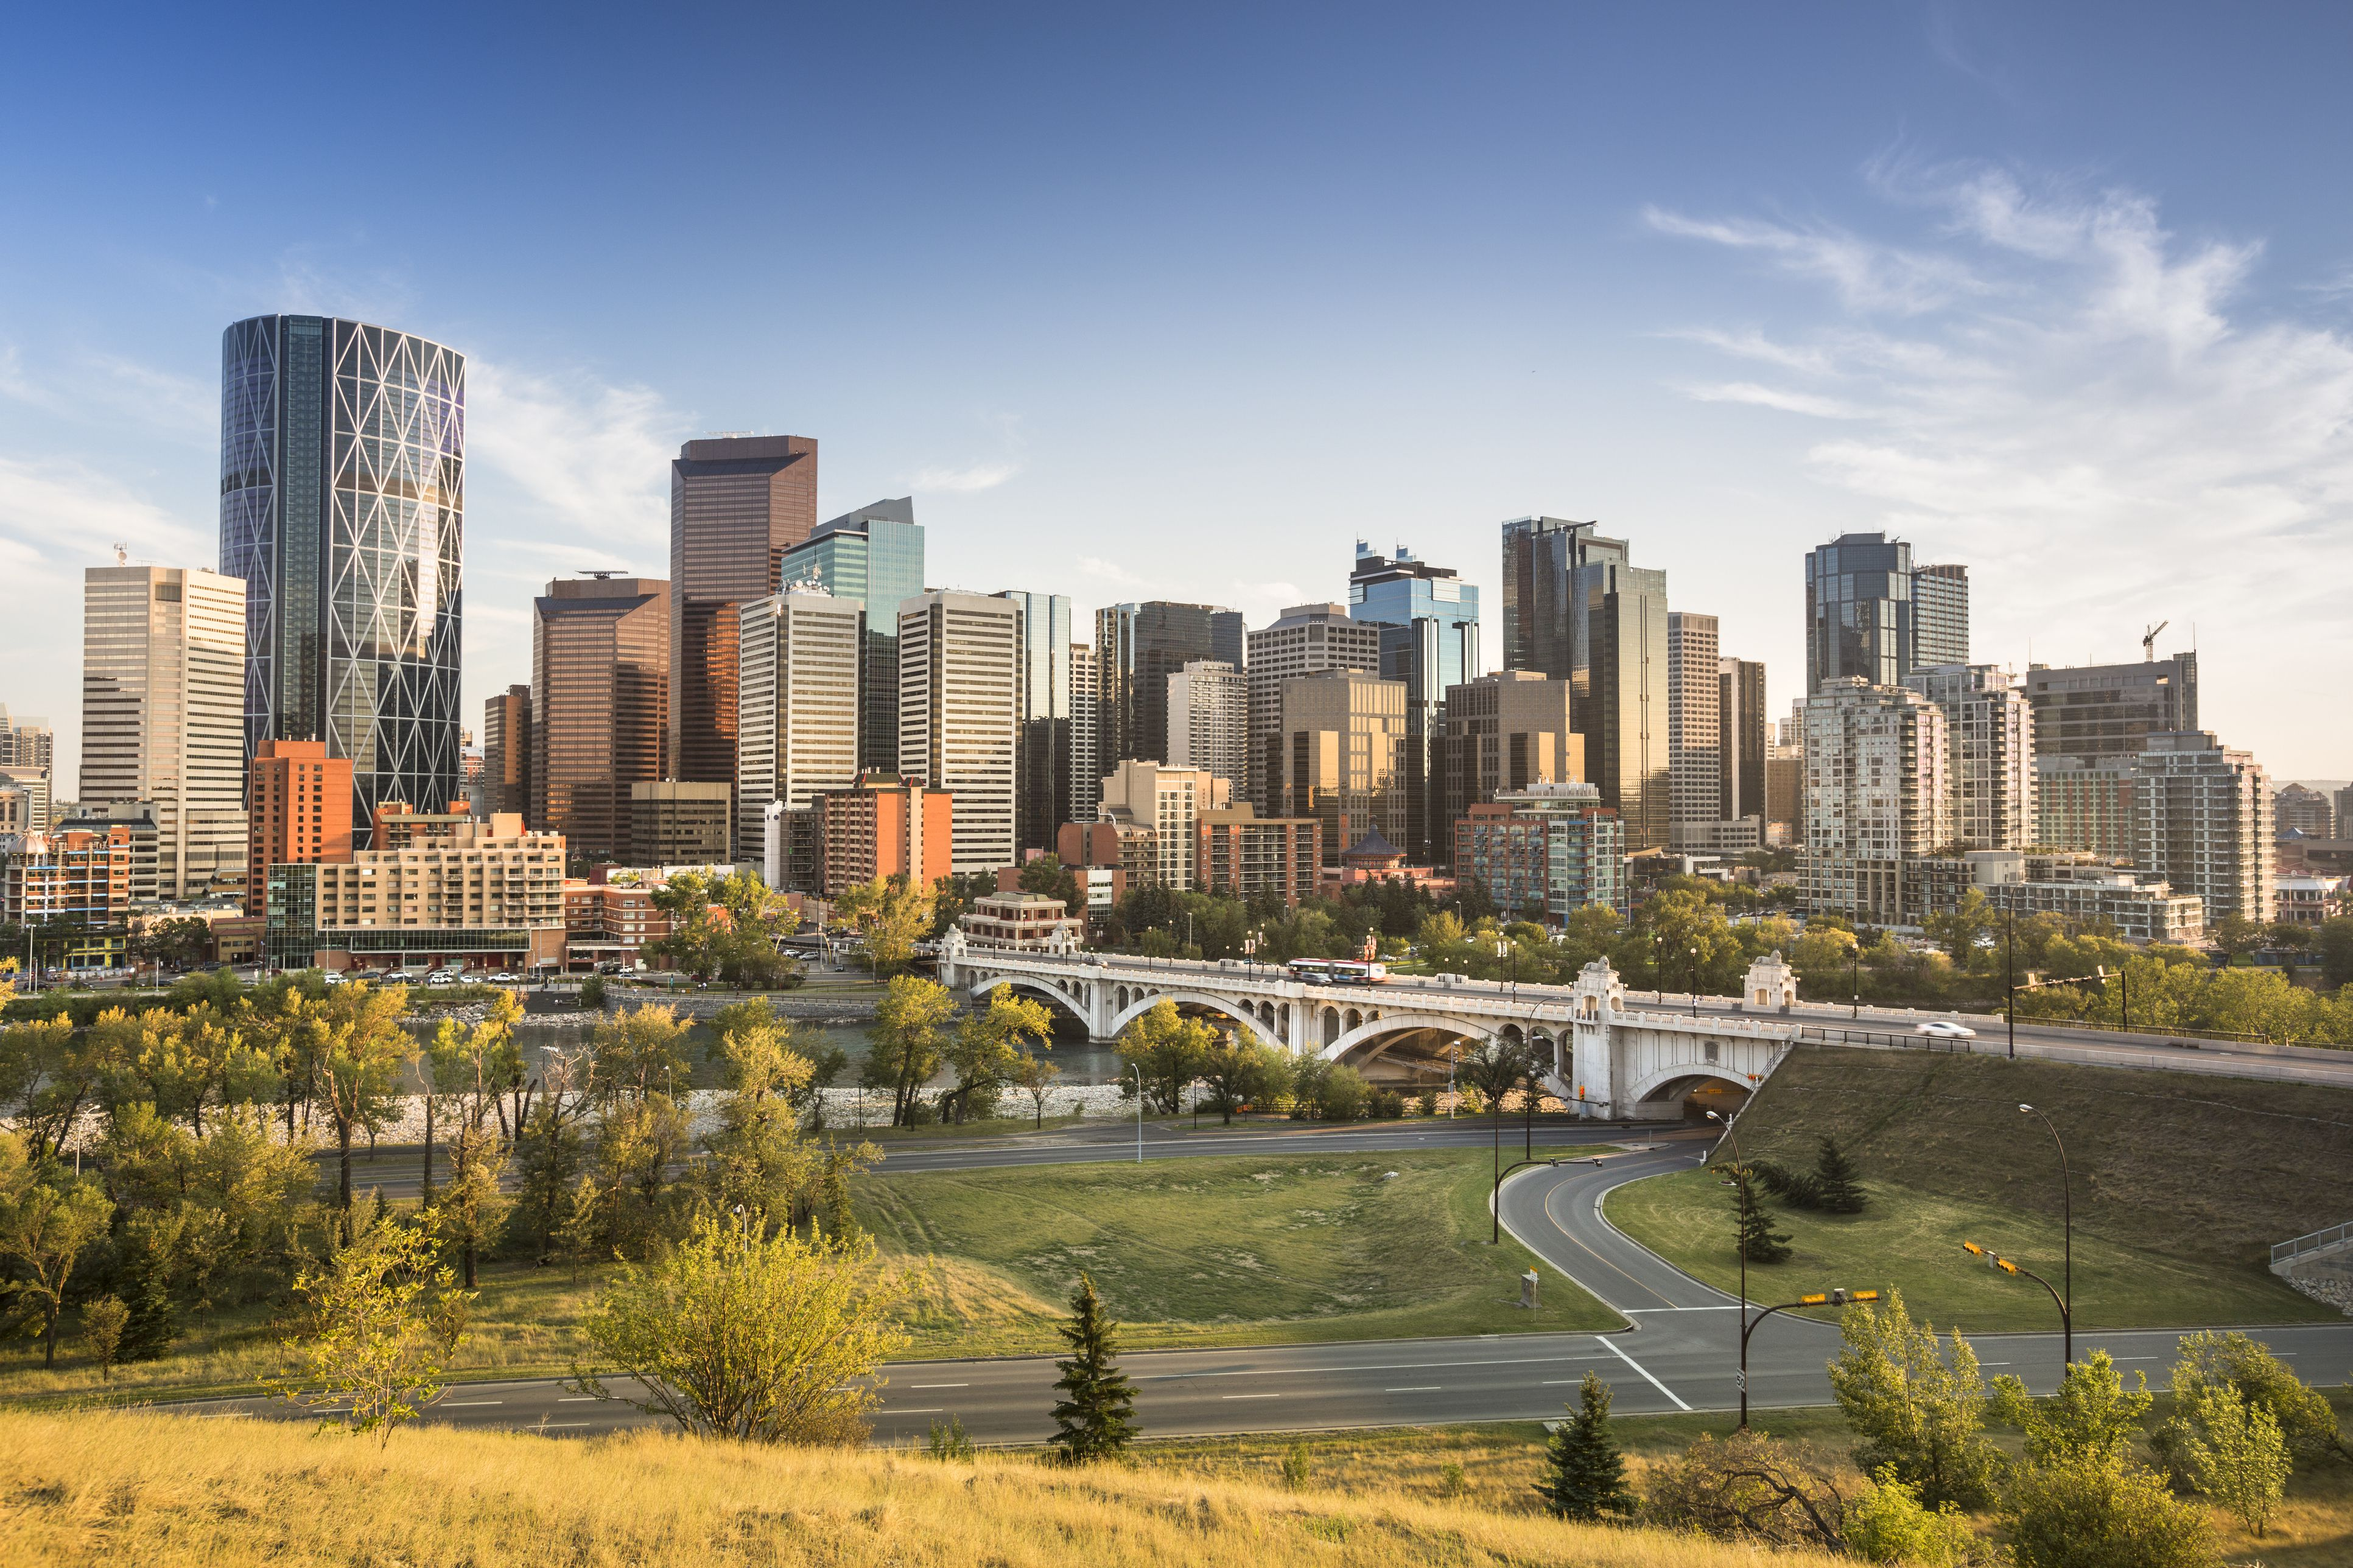 Southern Alberta and Calgary | Travel Photography and